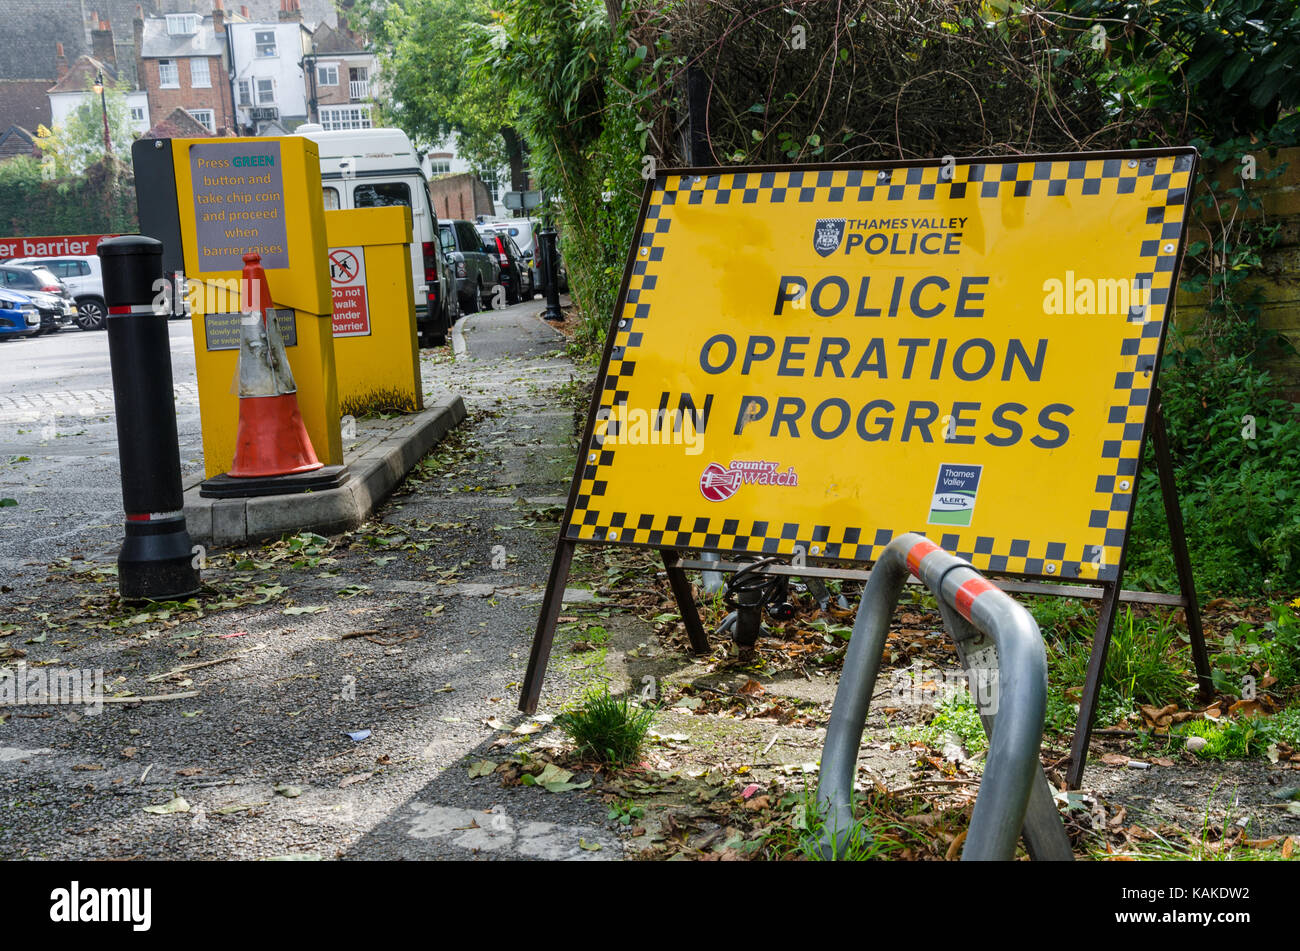 A yellow sign at the entrance to a car park in Windsor indicating that there is a police operation in progress. - Stock Image